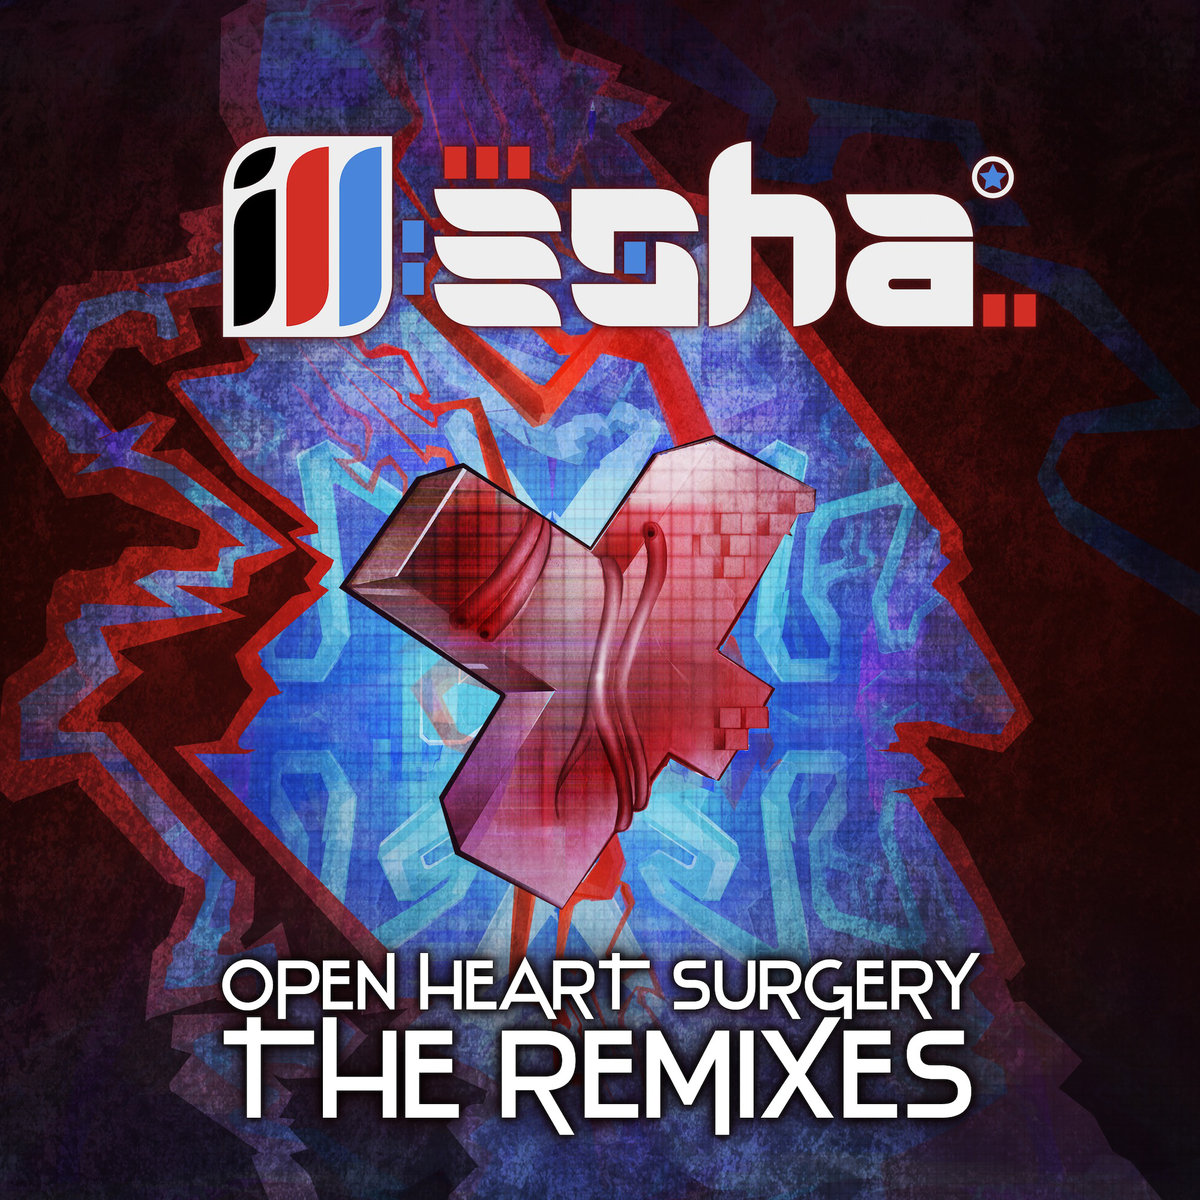 ill-esha - High Voltage Storms (kLL sMTH Remix) @ 'Open Heart Surgery: The Remixes' album (Austin)